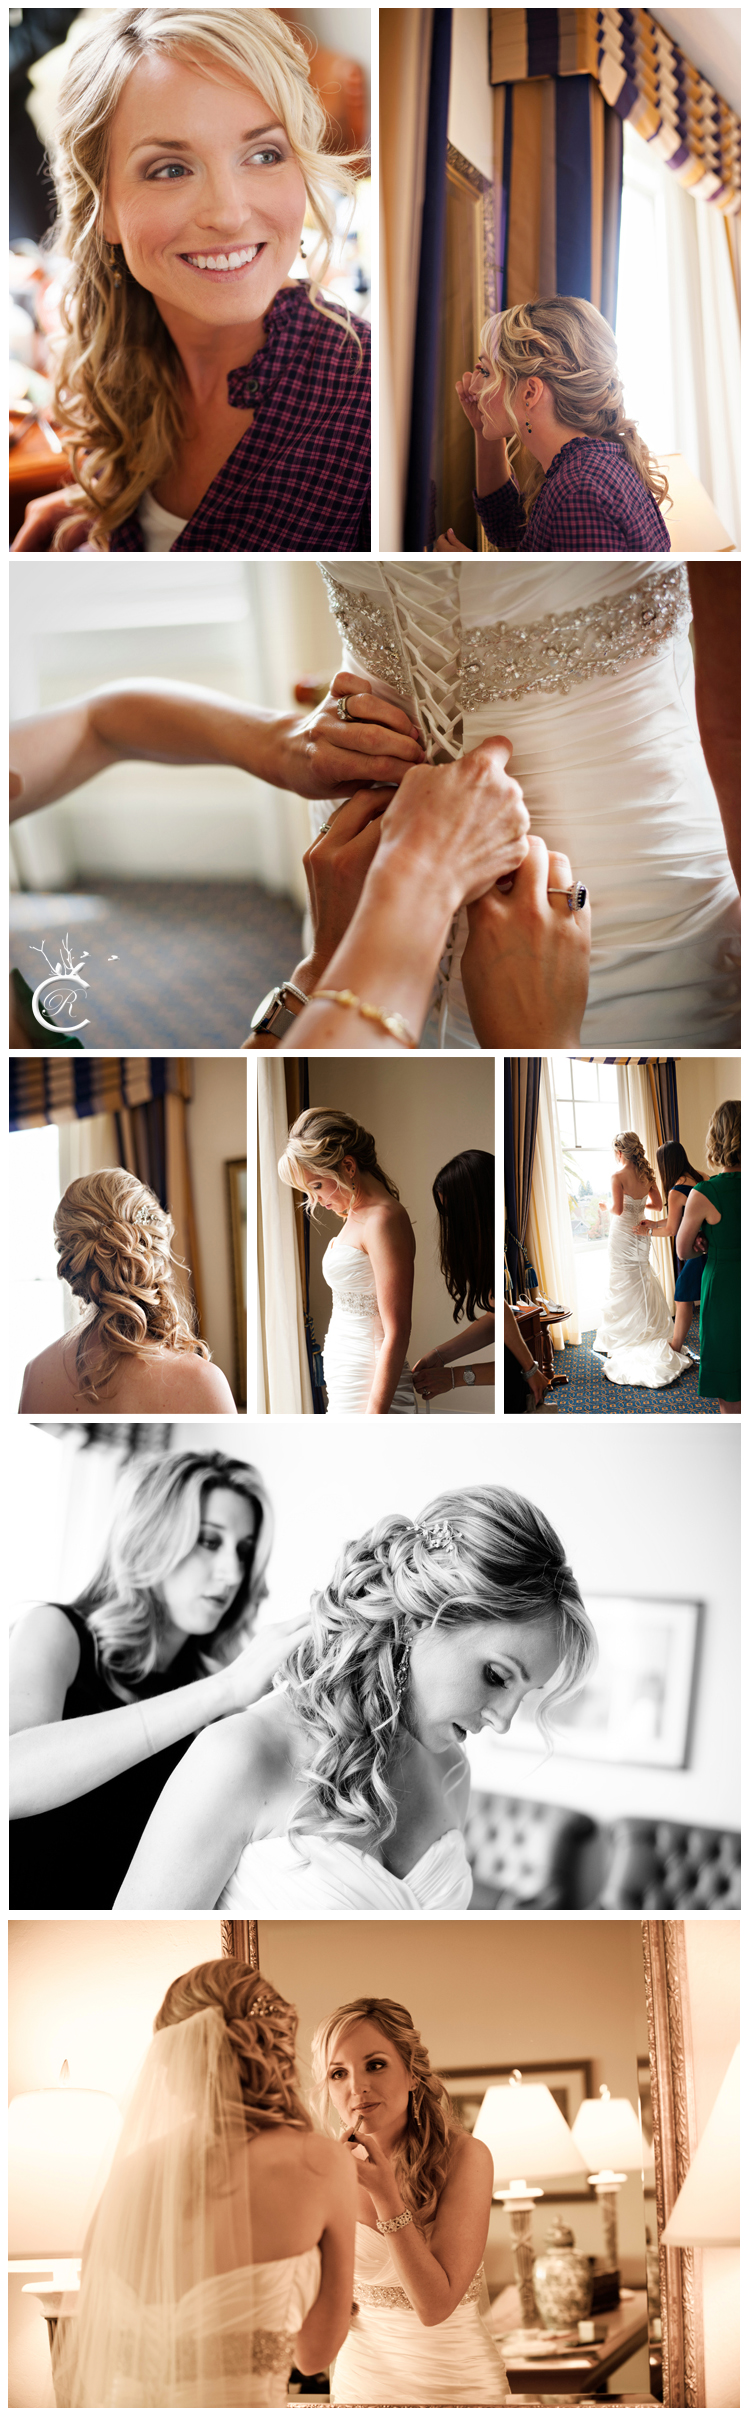 Bridal Wedding Photos